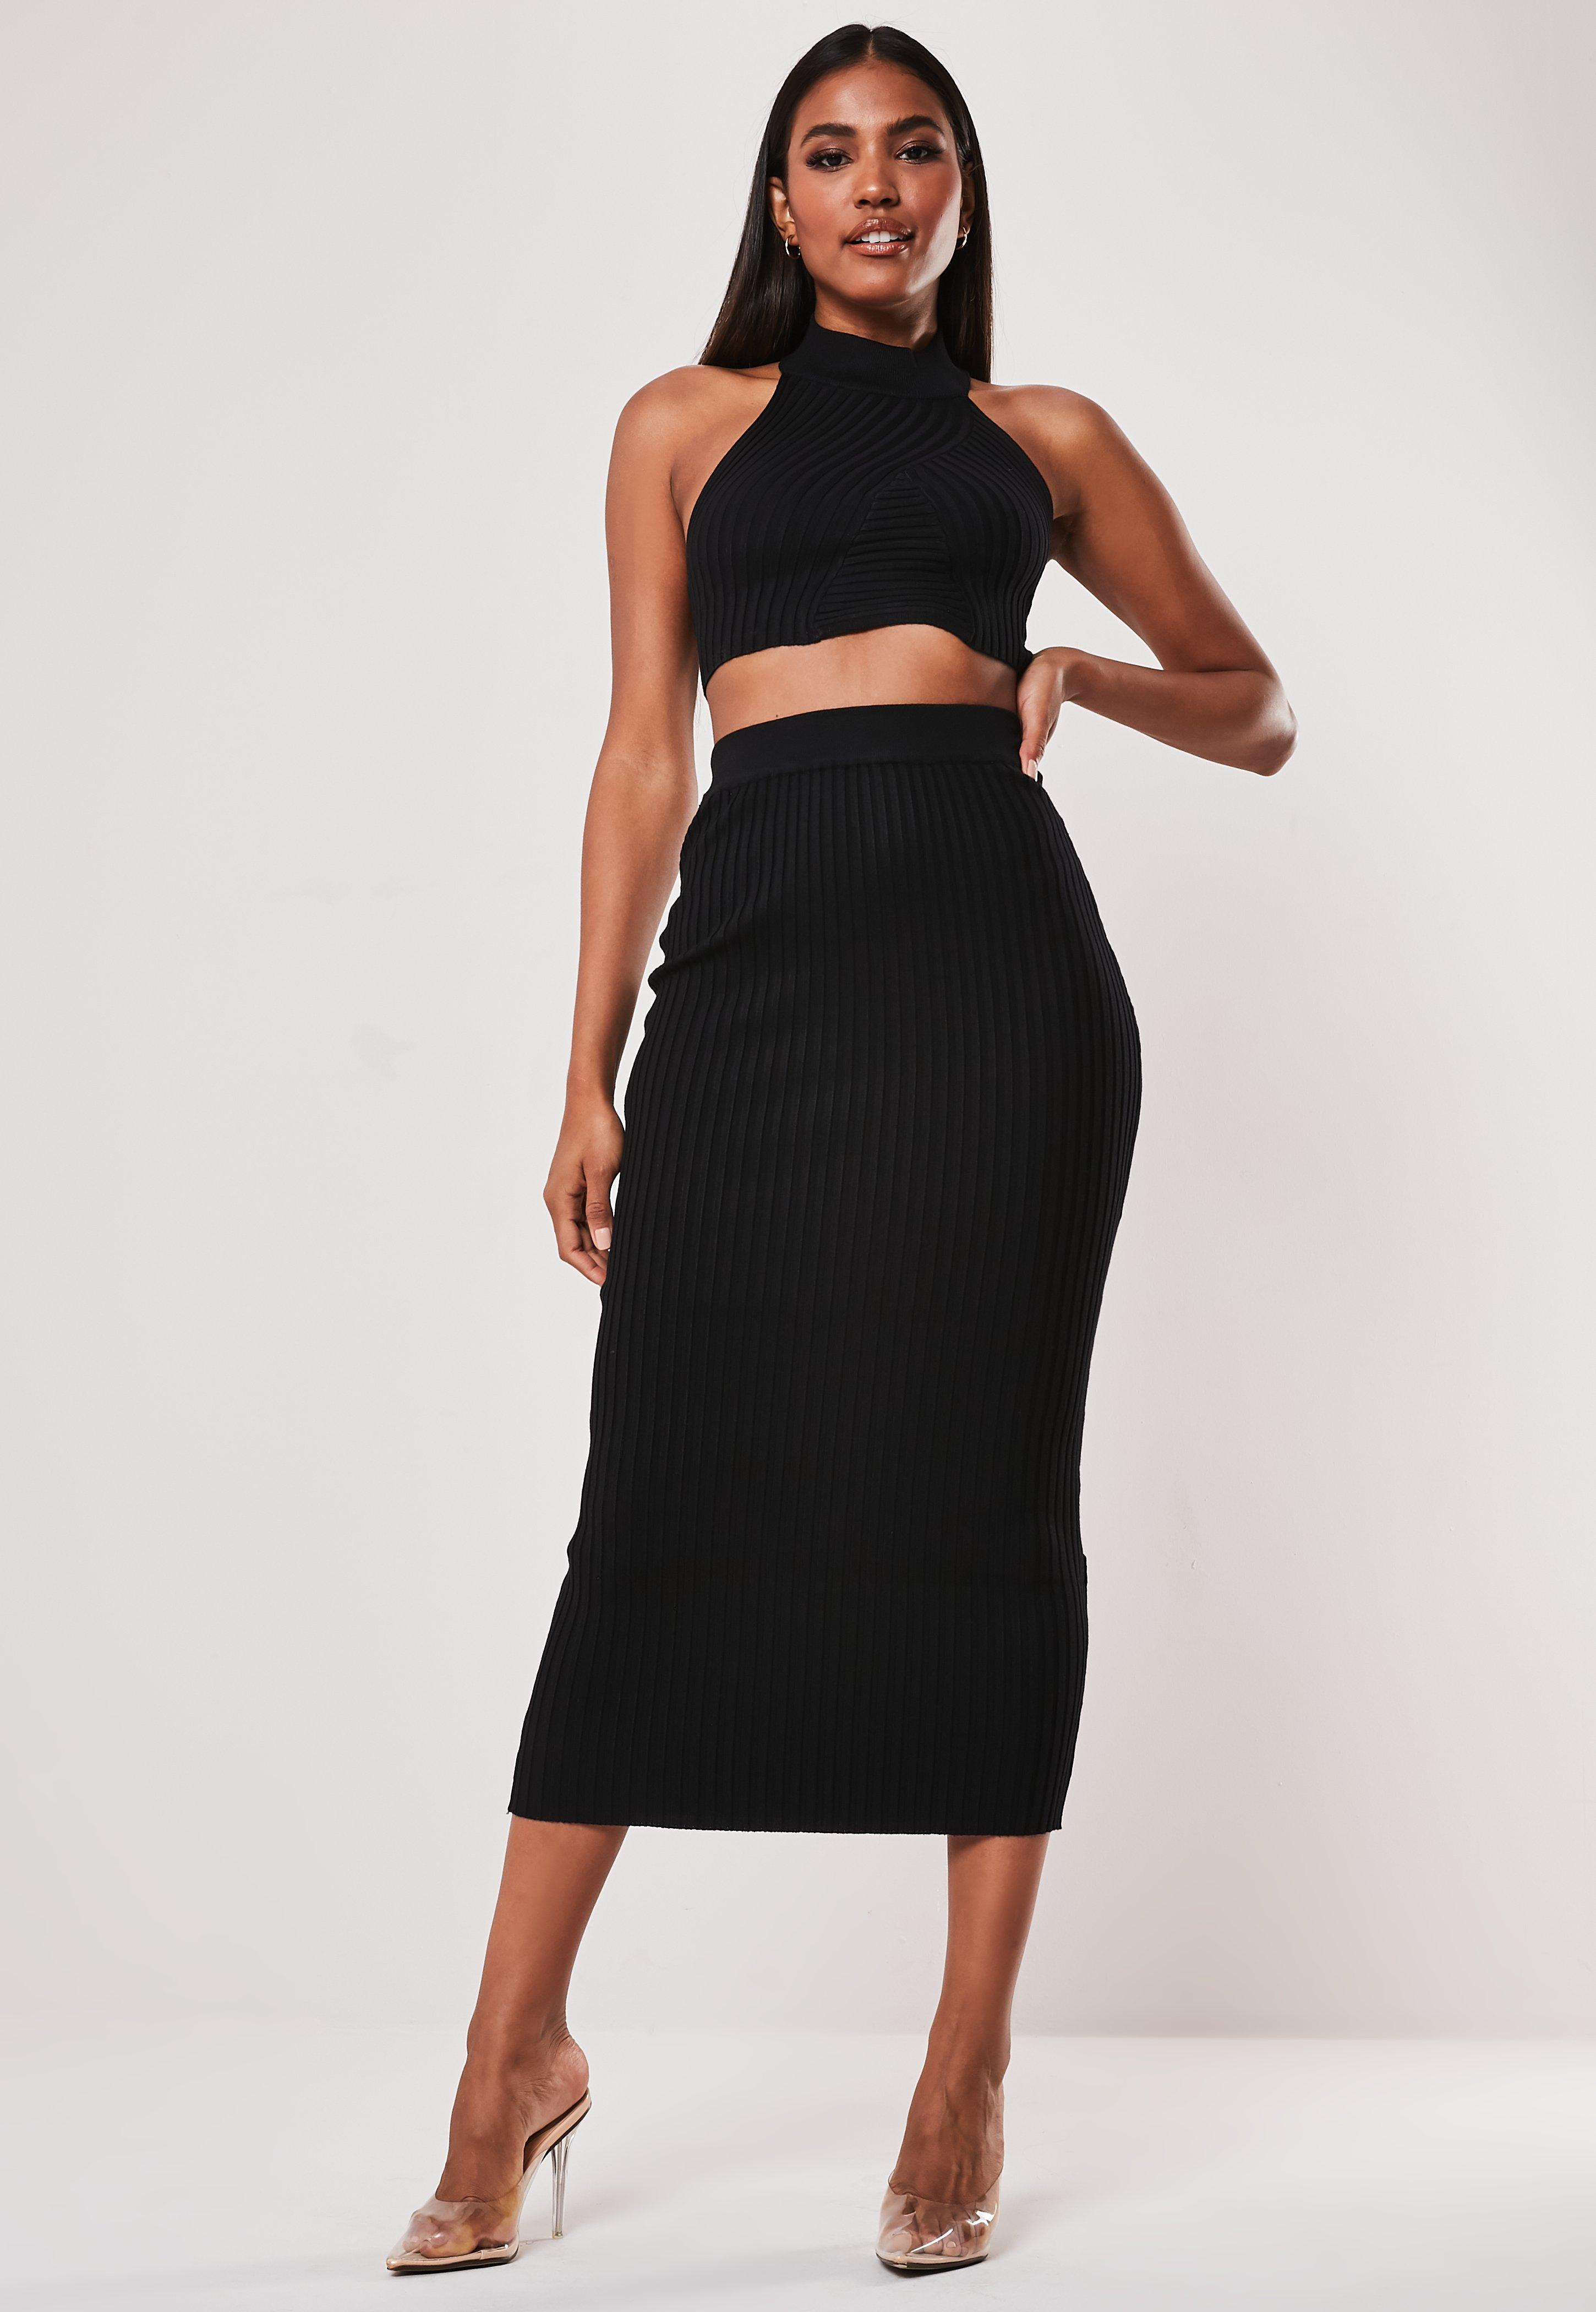 f4e19c437 Midi Skirts | Knee Length & Mid Length Skirts - Missguided